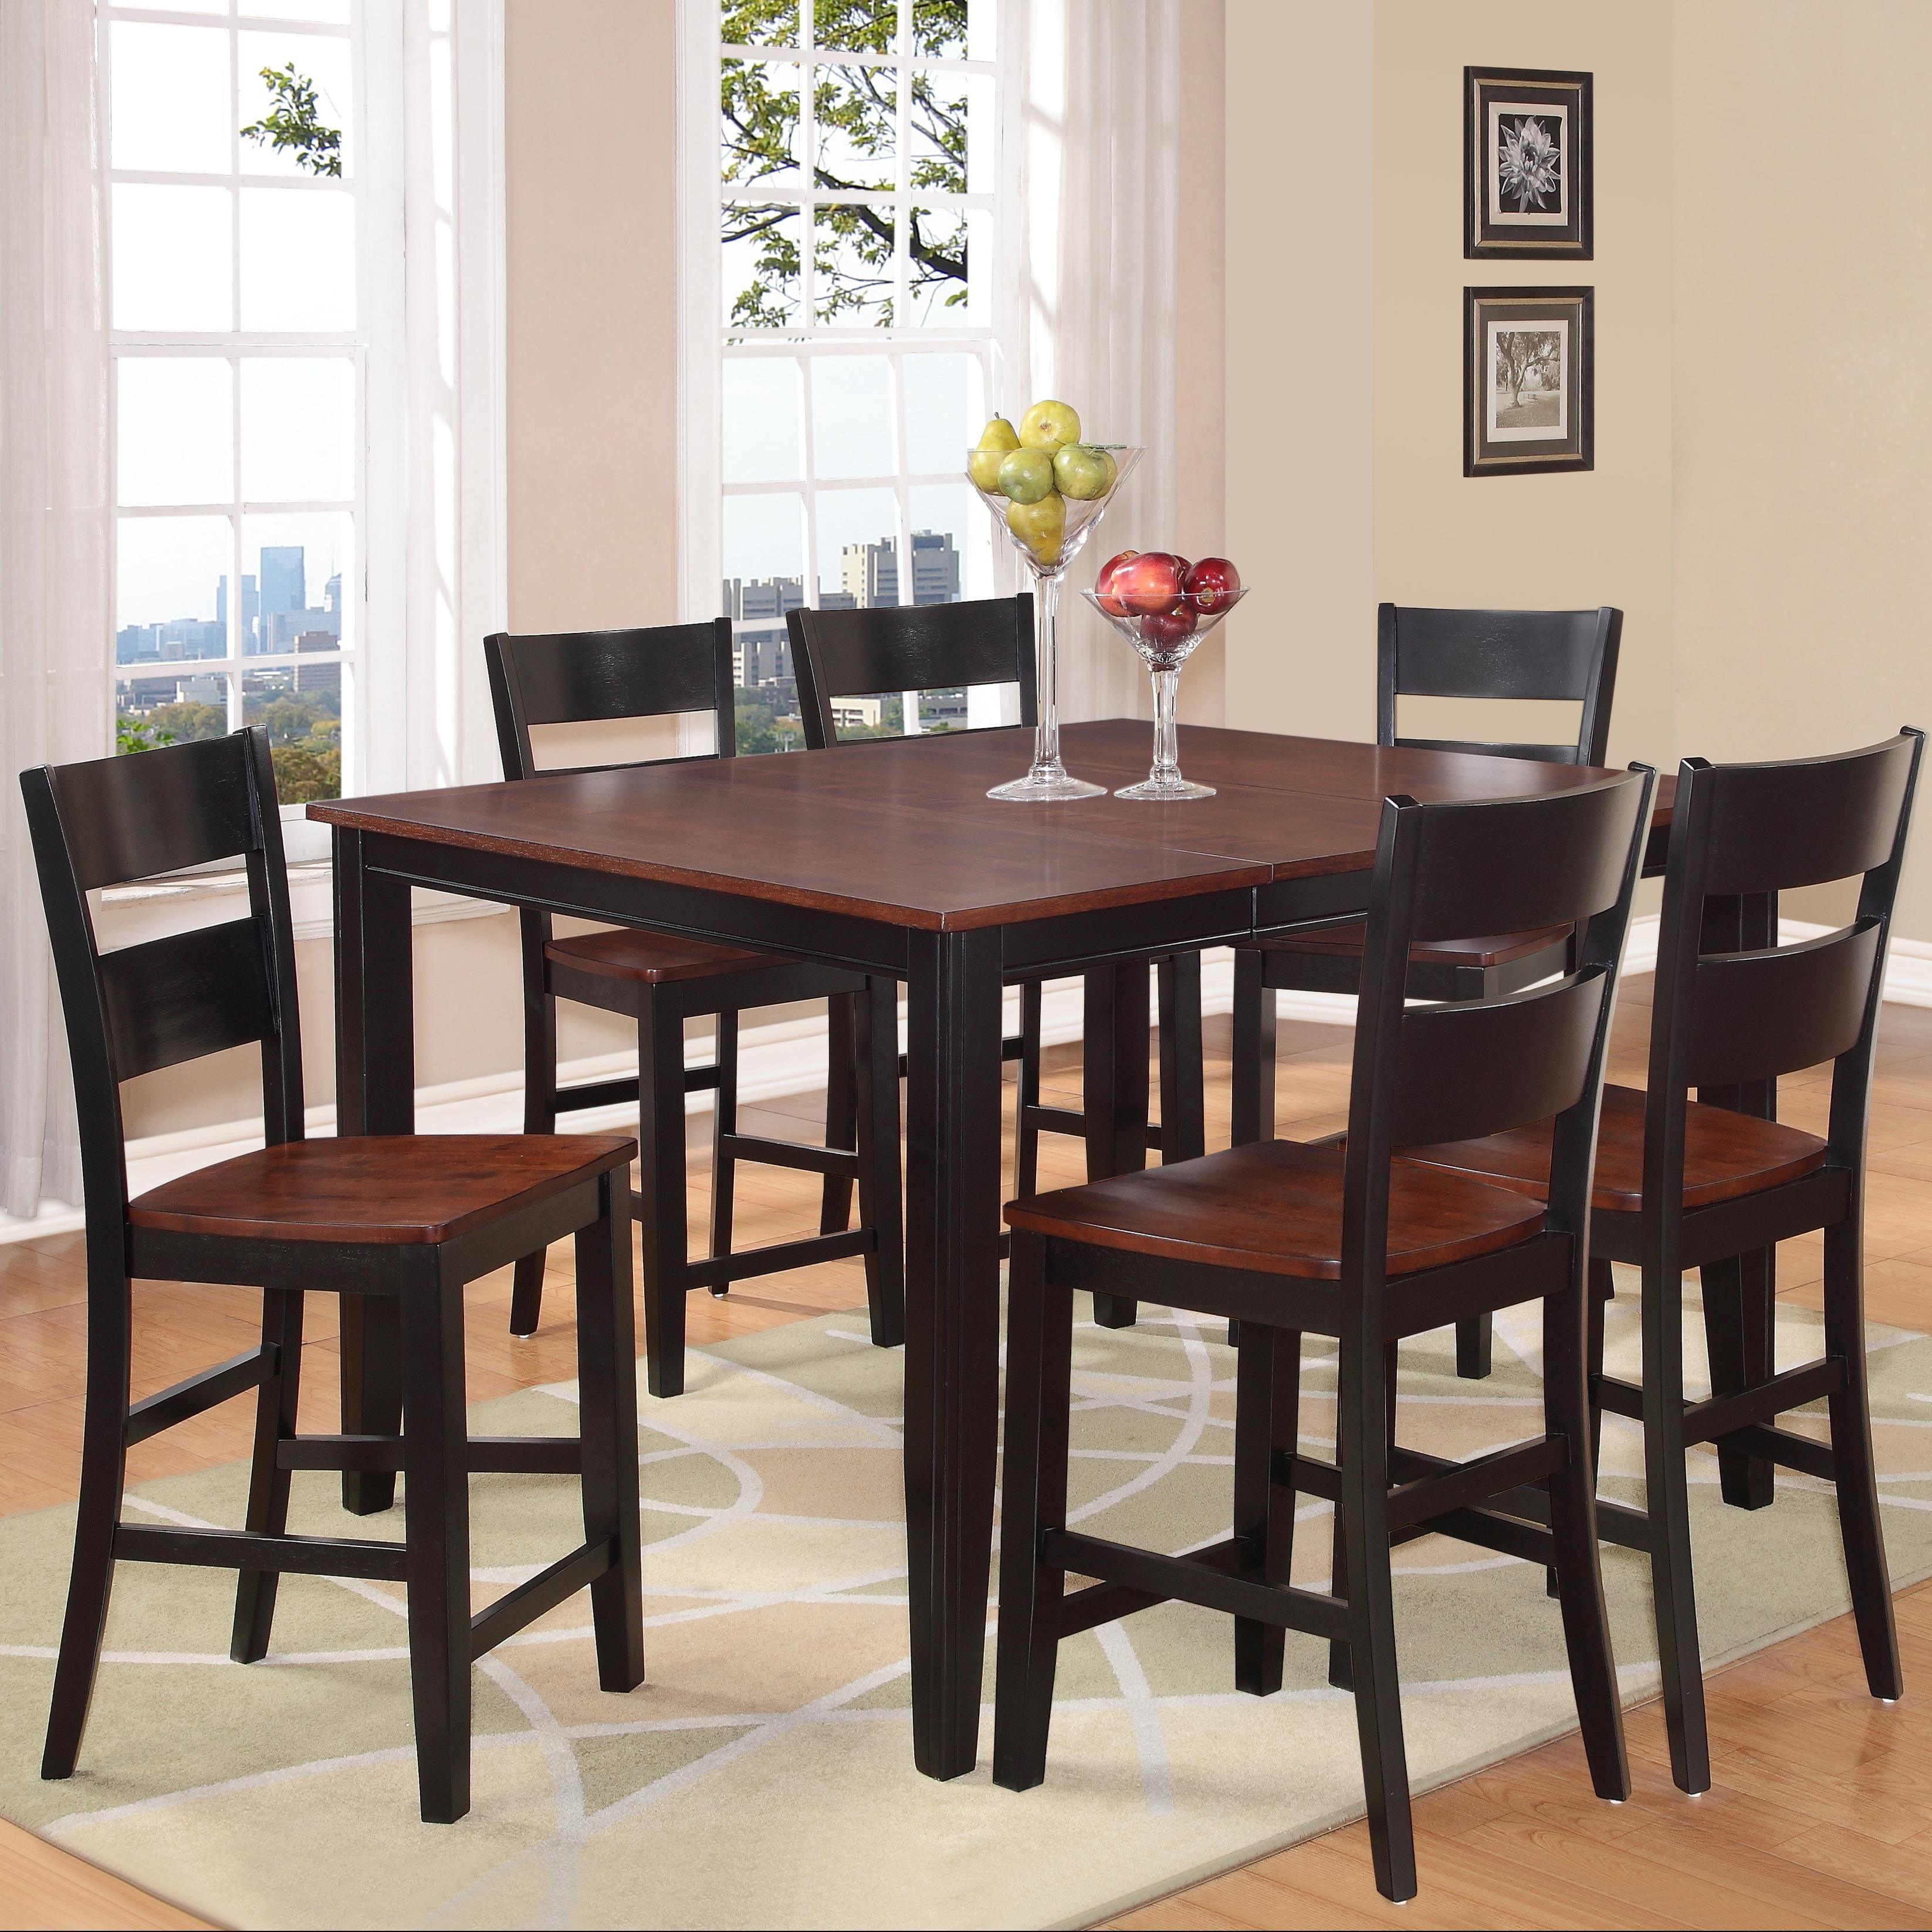 8202 7 Piece Counter Height Dining Set With Square Table By Holland House At Royal Furniture Pub Dining Set Pub Table Sets High Top Tables